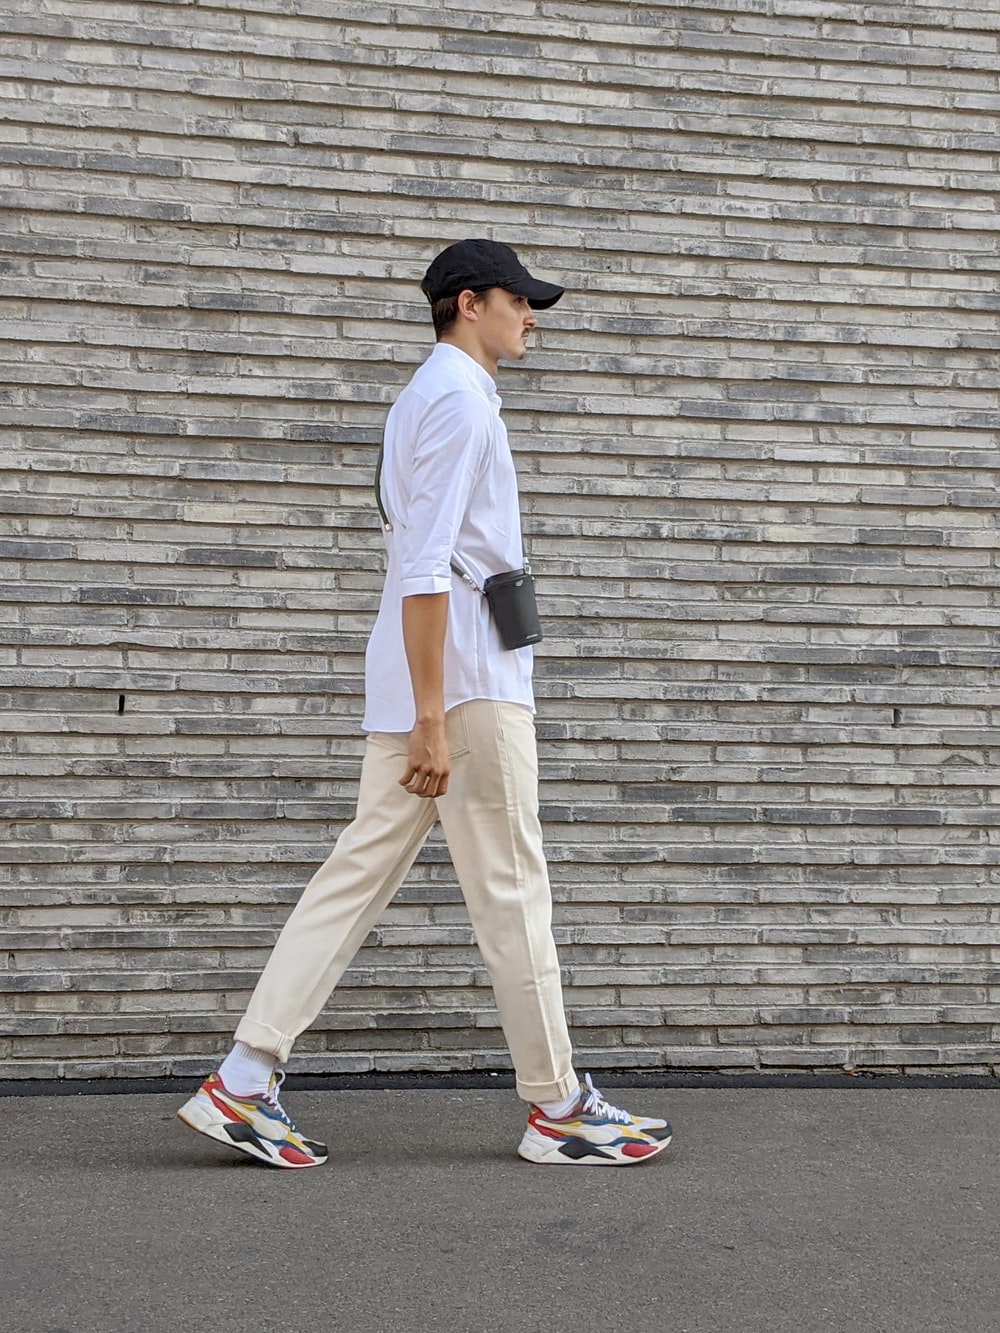 man in white t-shirt and beige pants standing on gray concrete floor